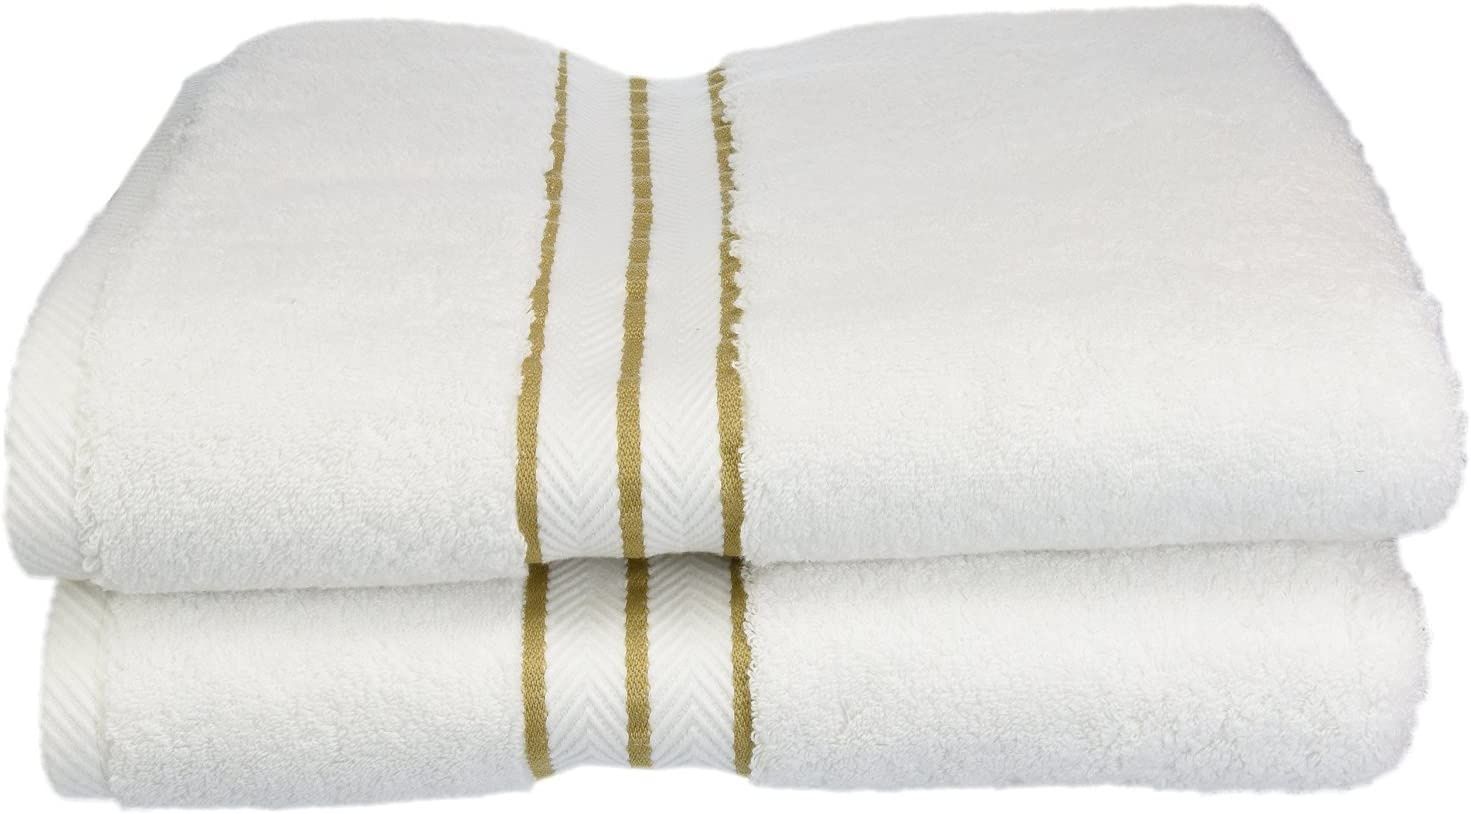 SUPERIOR Egyptian Cotton 6-Piece Towel Set with Color Border